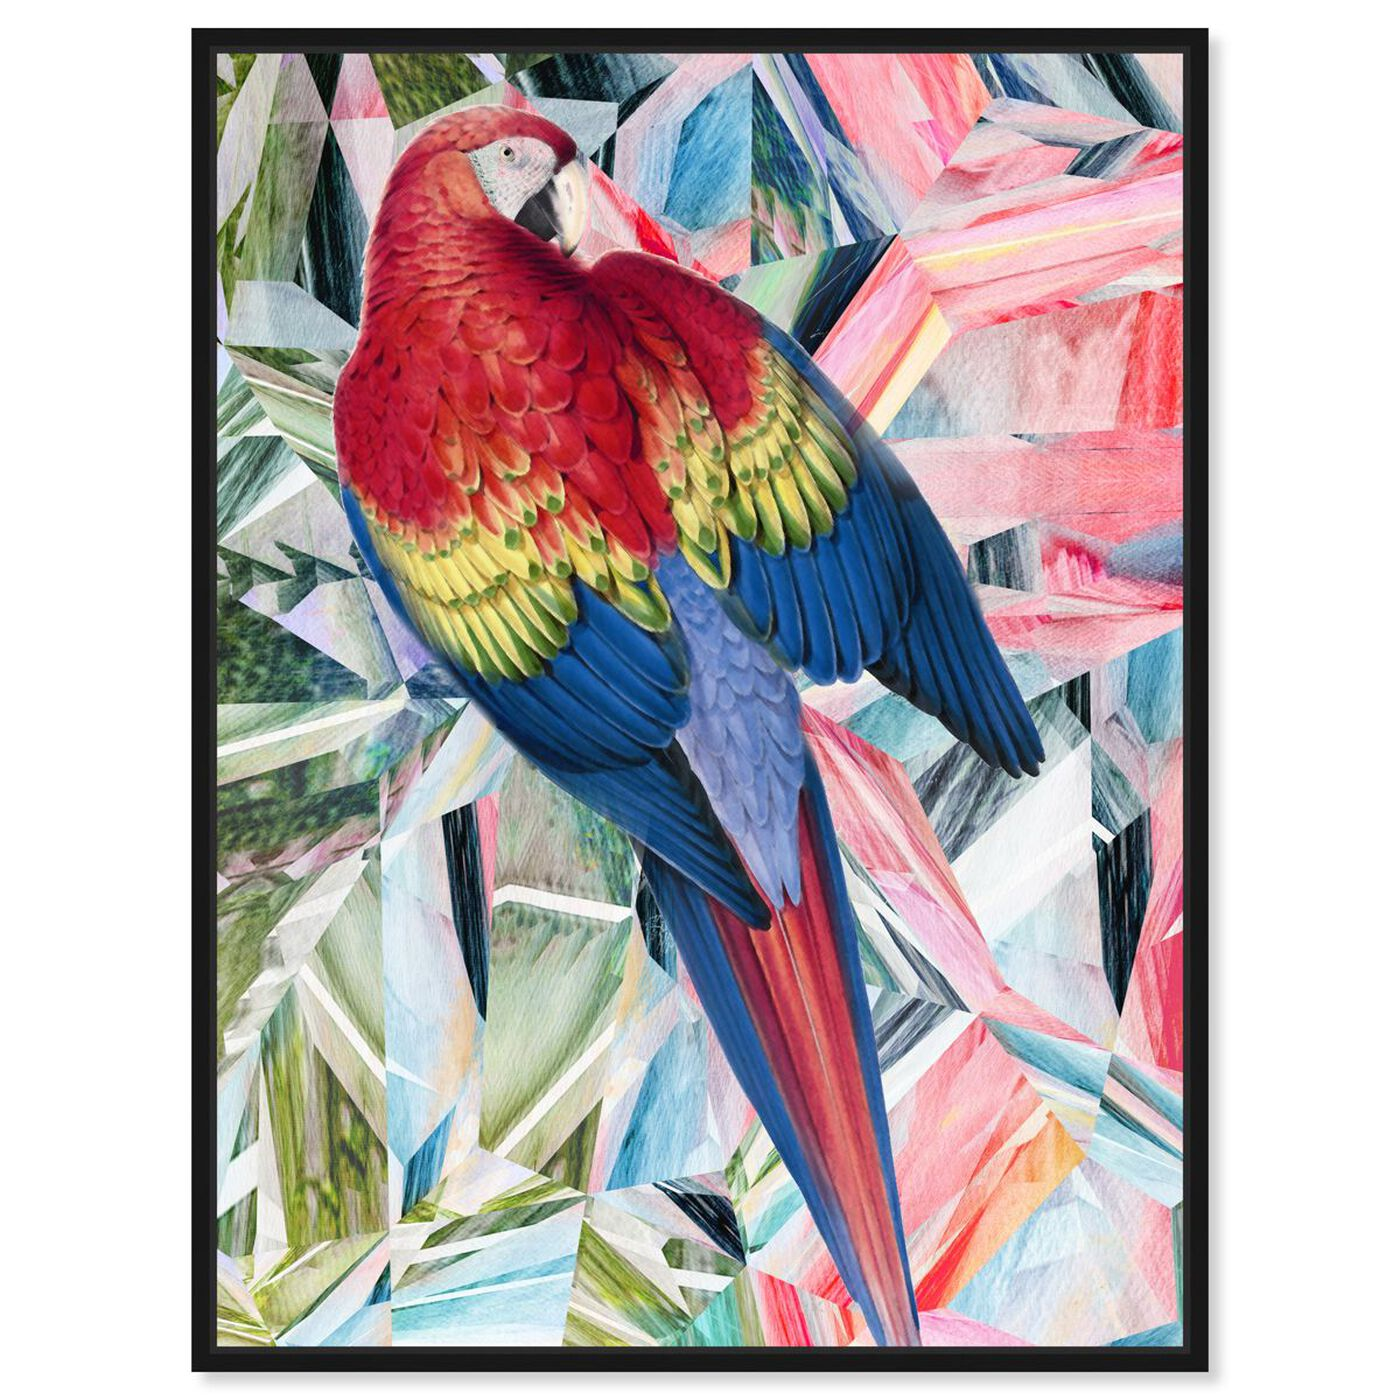 Front view of Modern Parrot featuring animals and birds art.